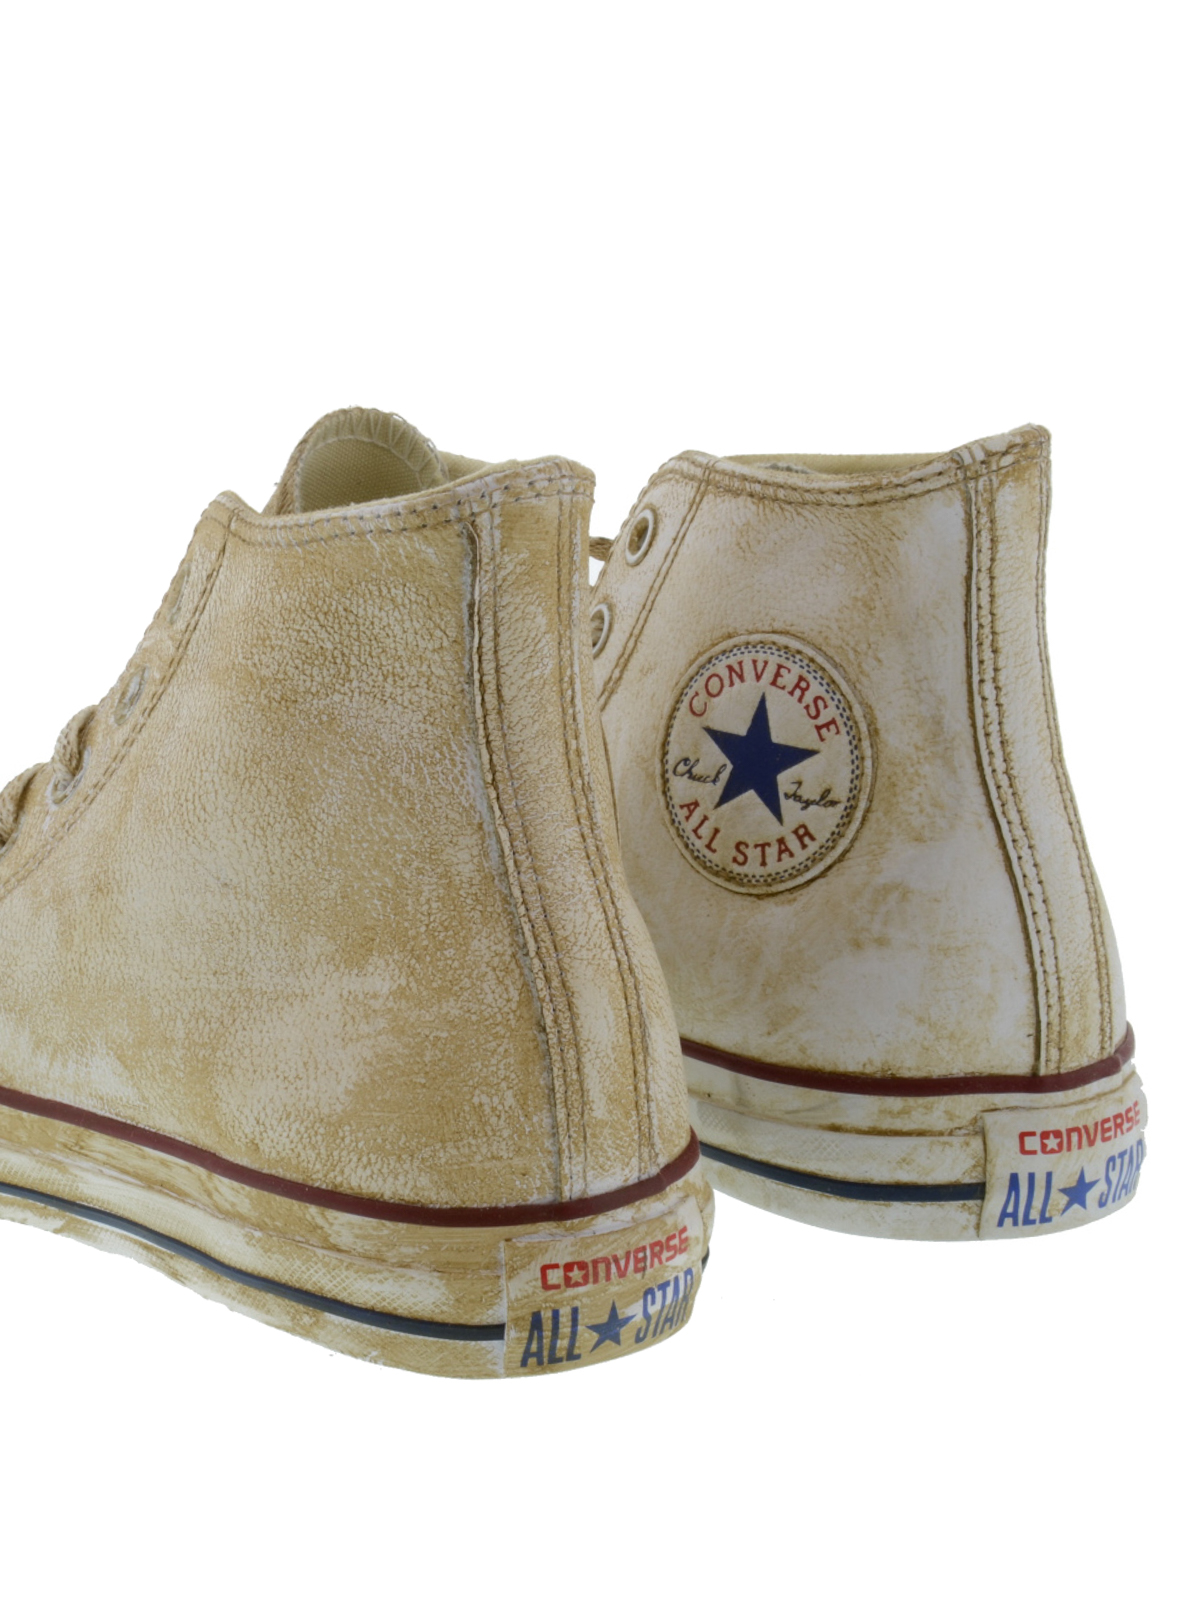 Trainers Converse Limited Edition - Limited Edition sneakers ...